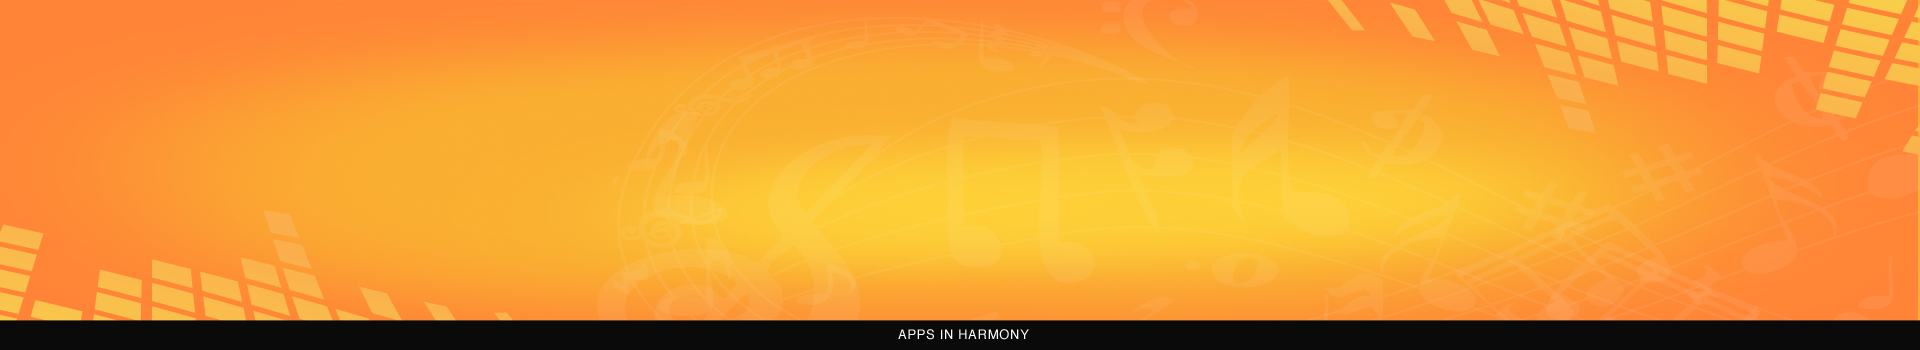 Harmony-Orange-bg-banner